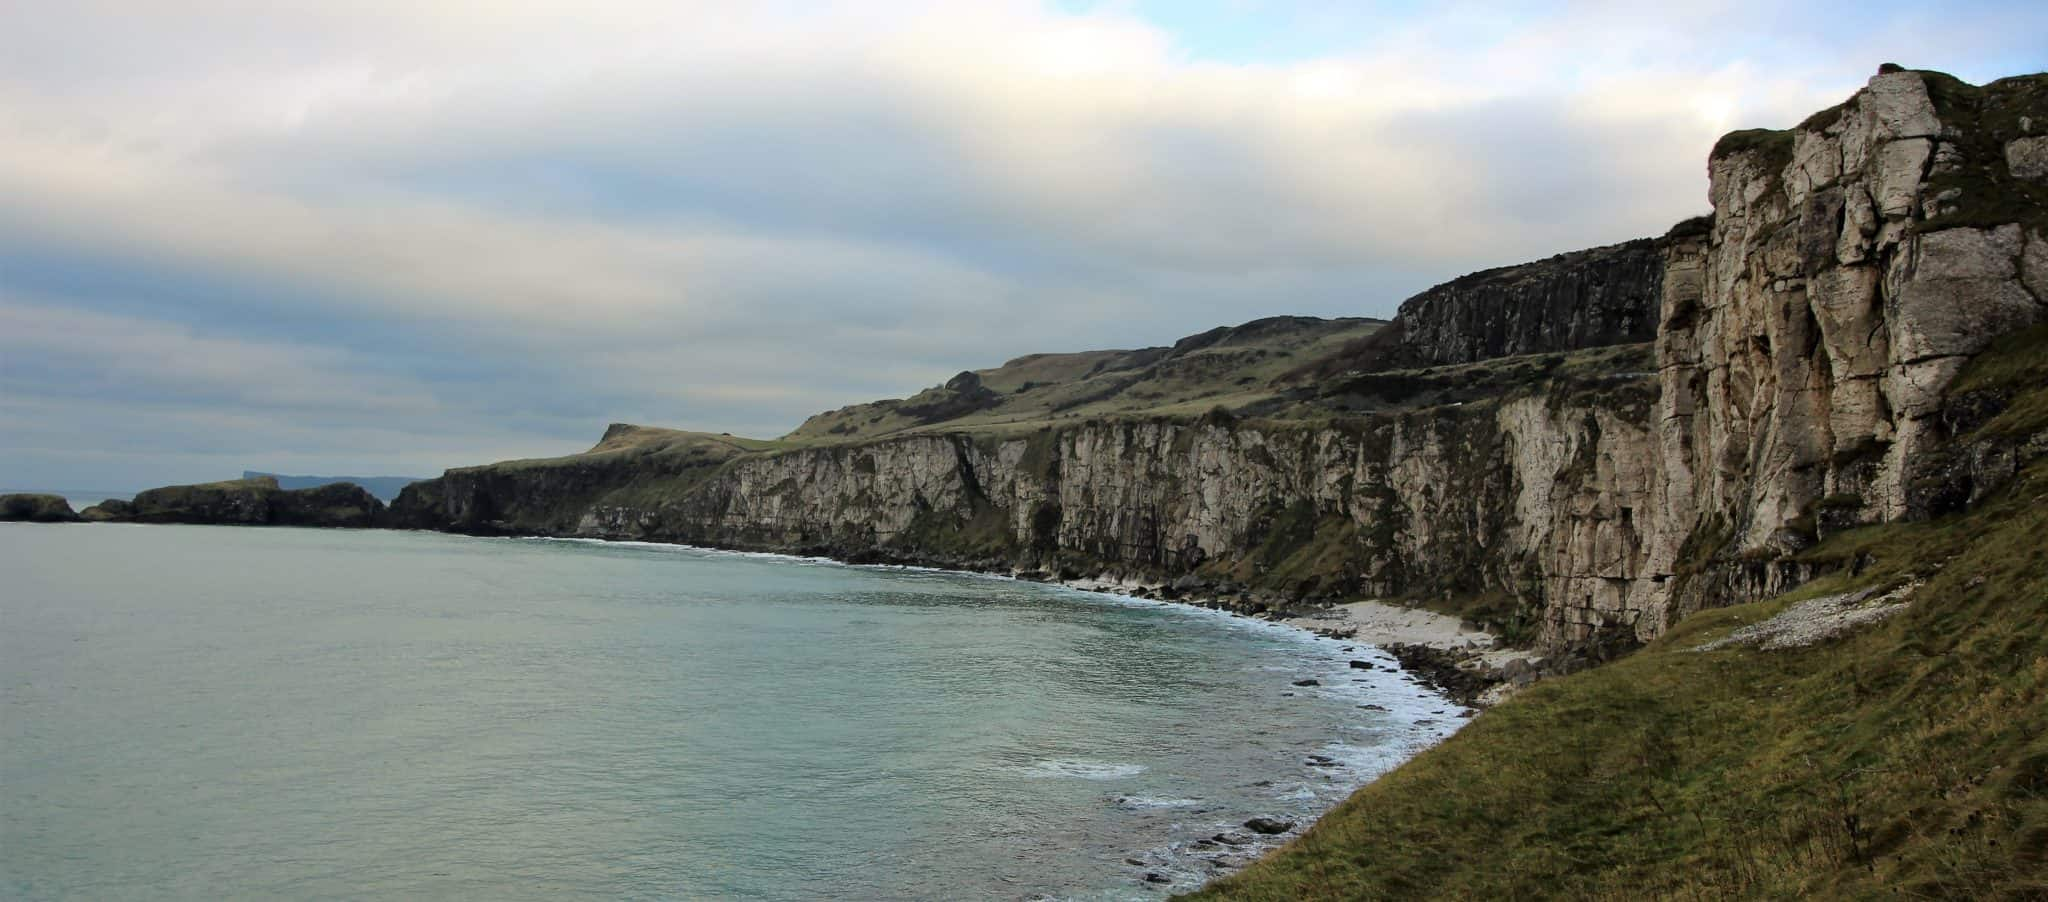 Carrick-a-rede Bridge View - Northern Ireland Travel guide